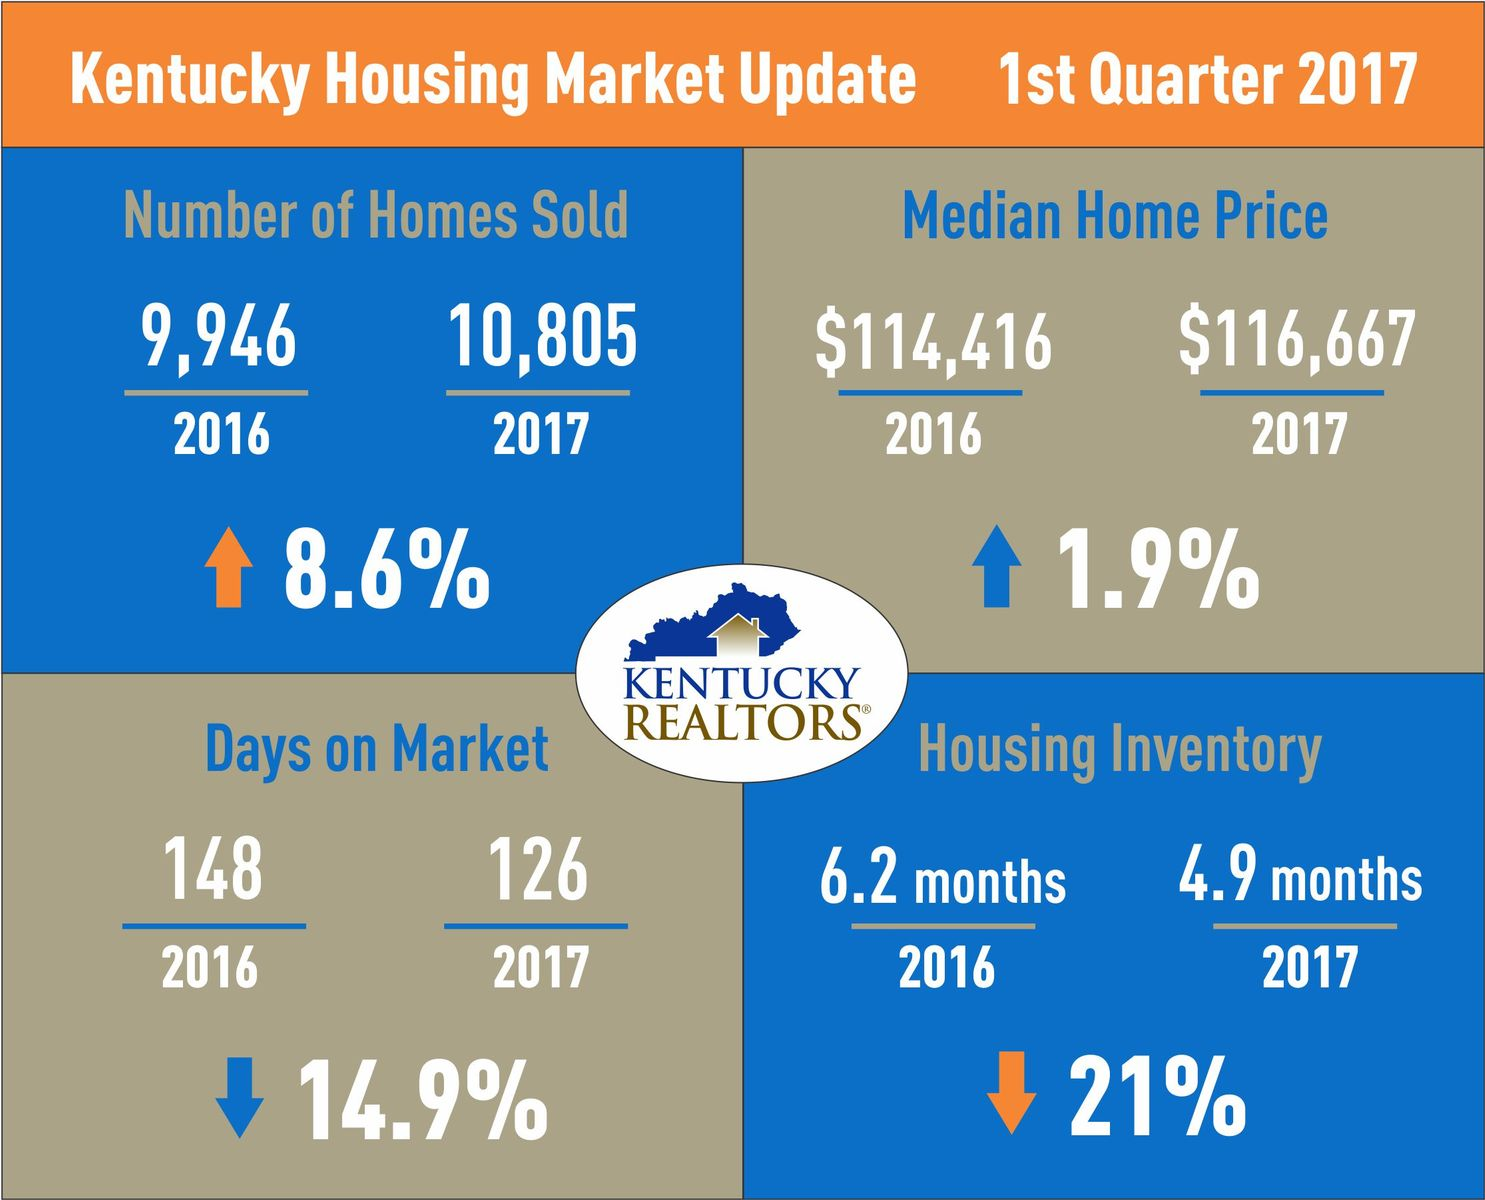 Kentucky Housing Market Update 1Q2017